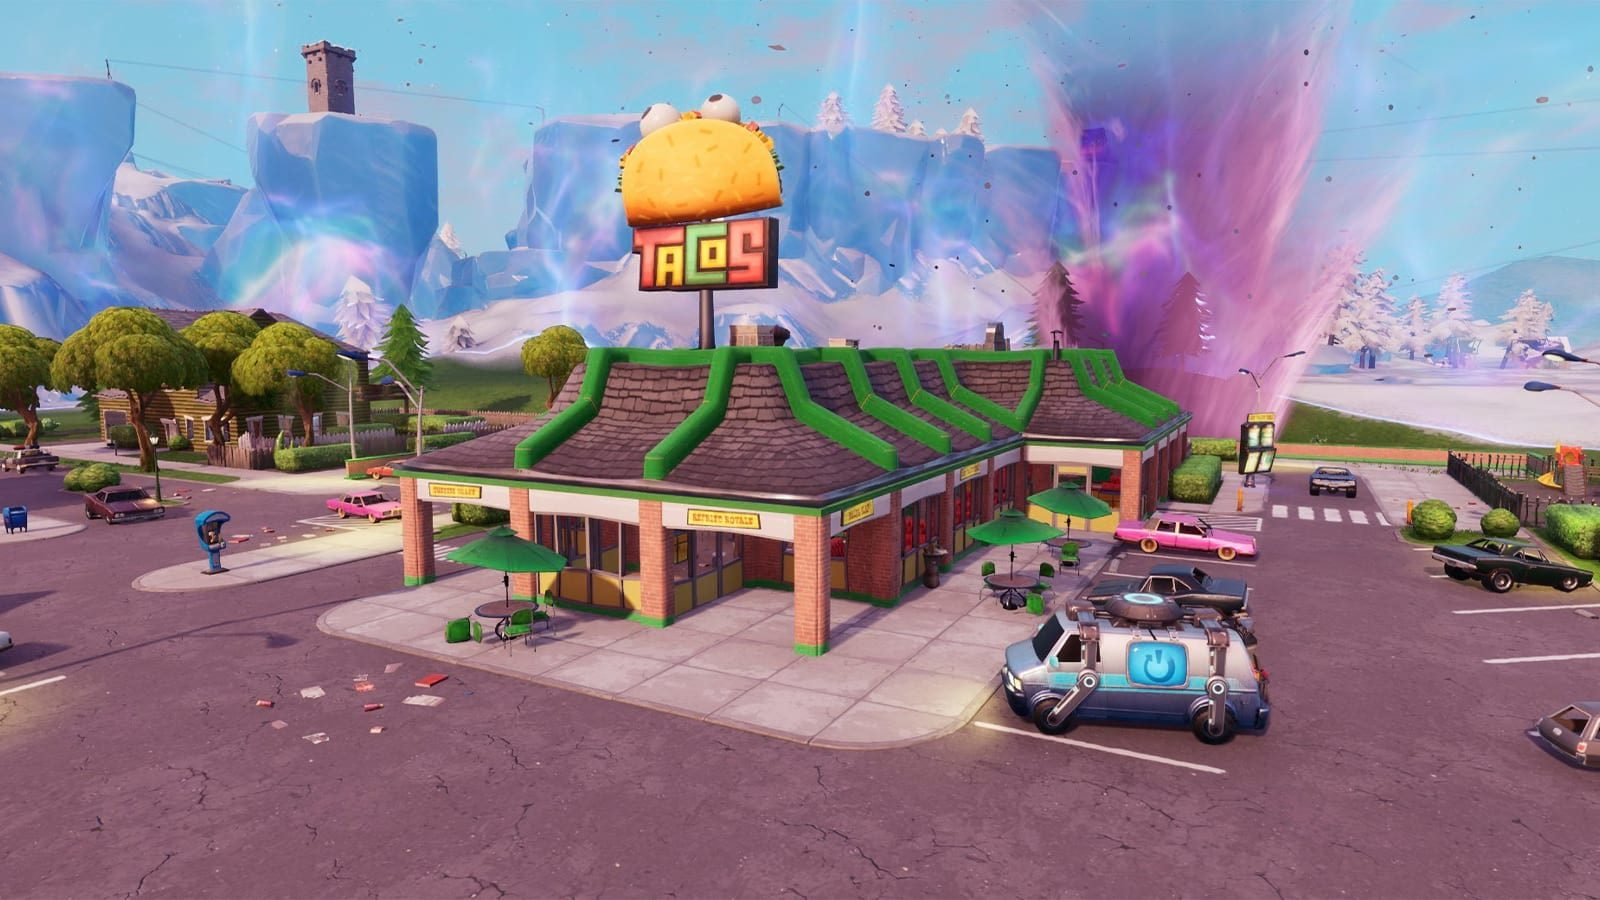 Fortnite fails to show how Taco Time can lead to a rapid death